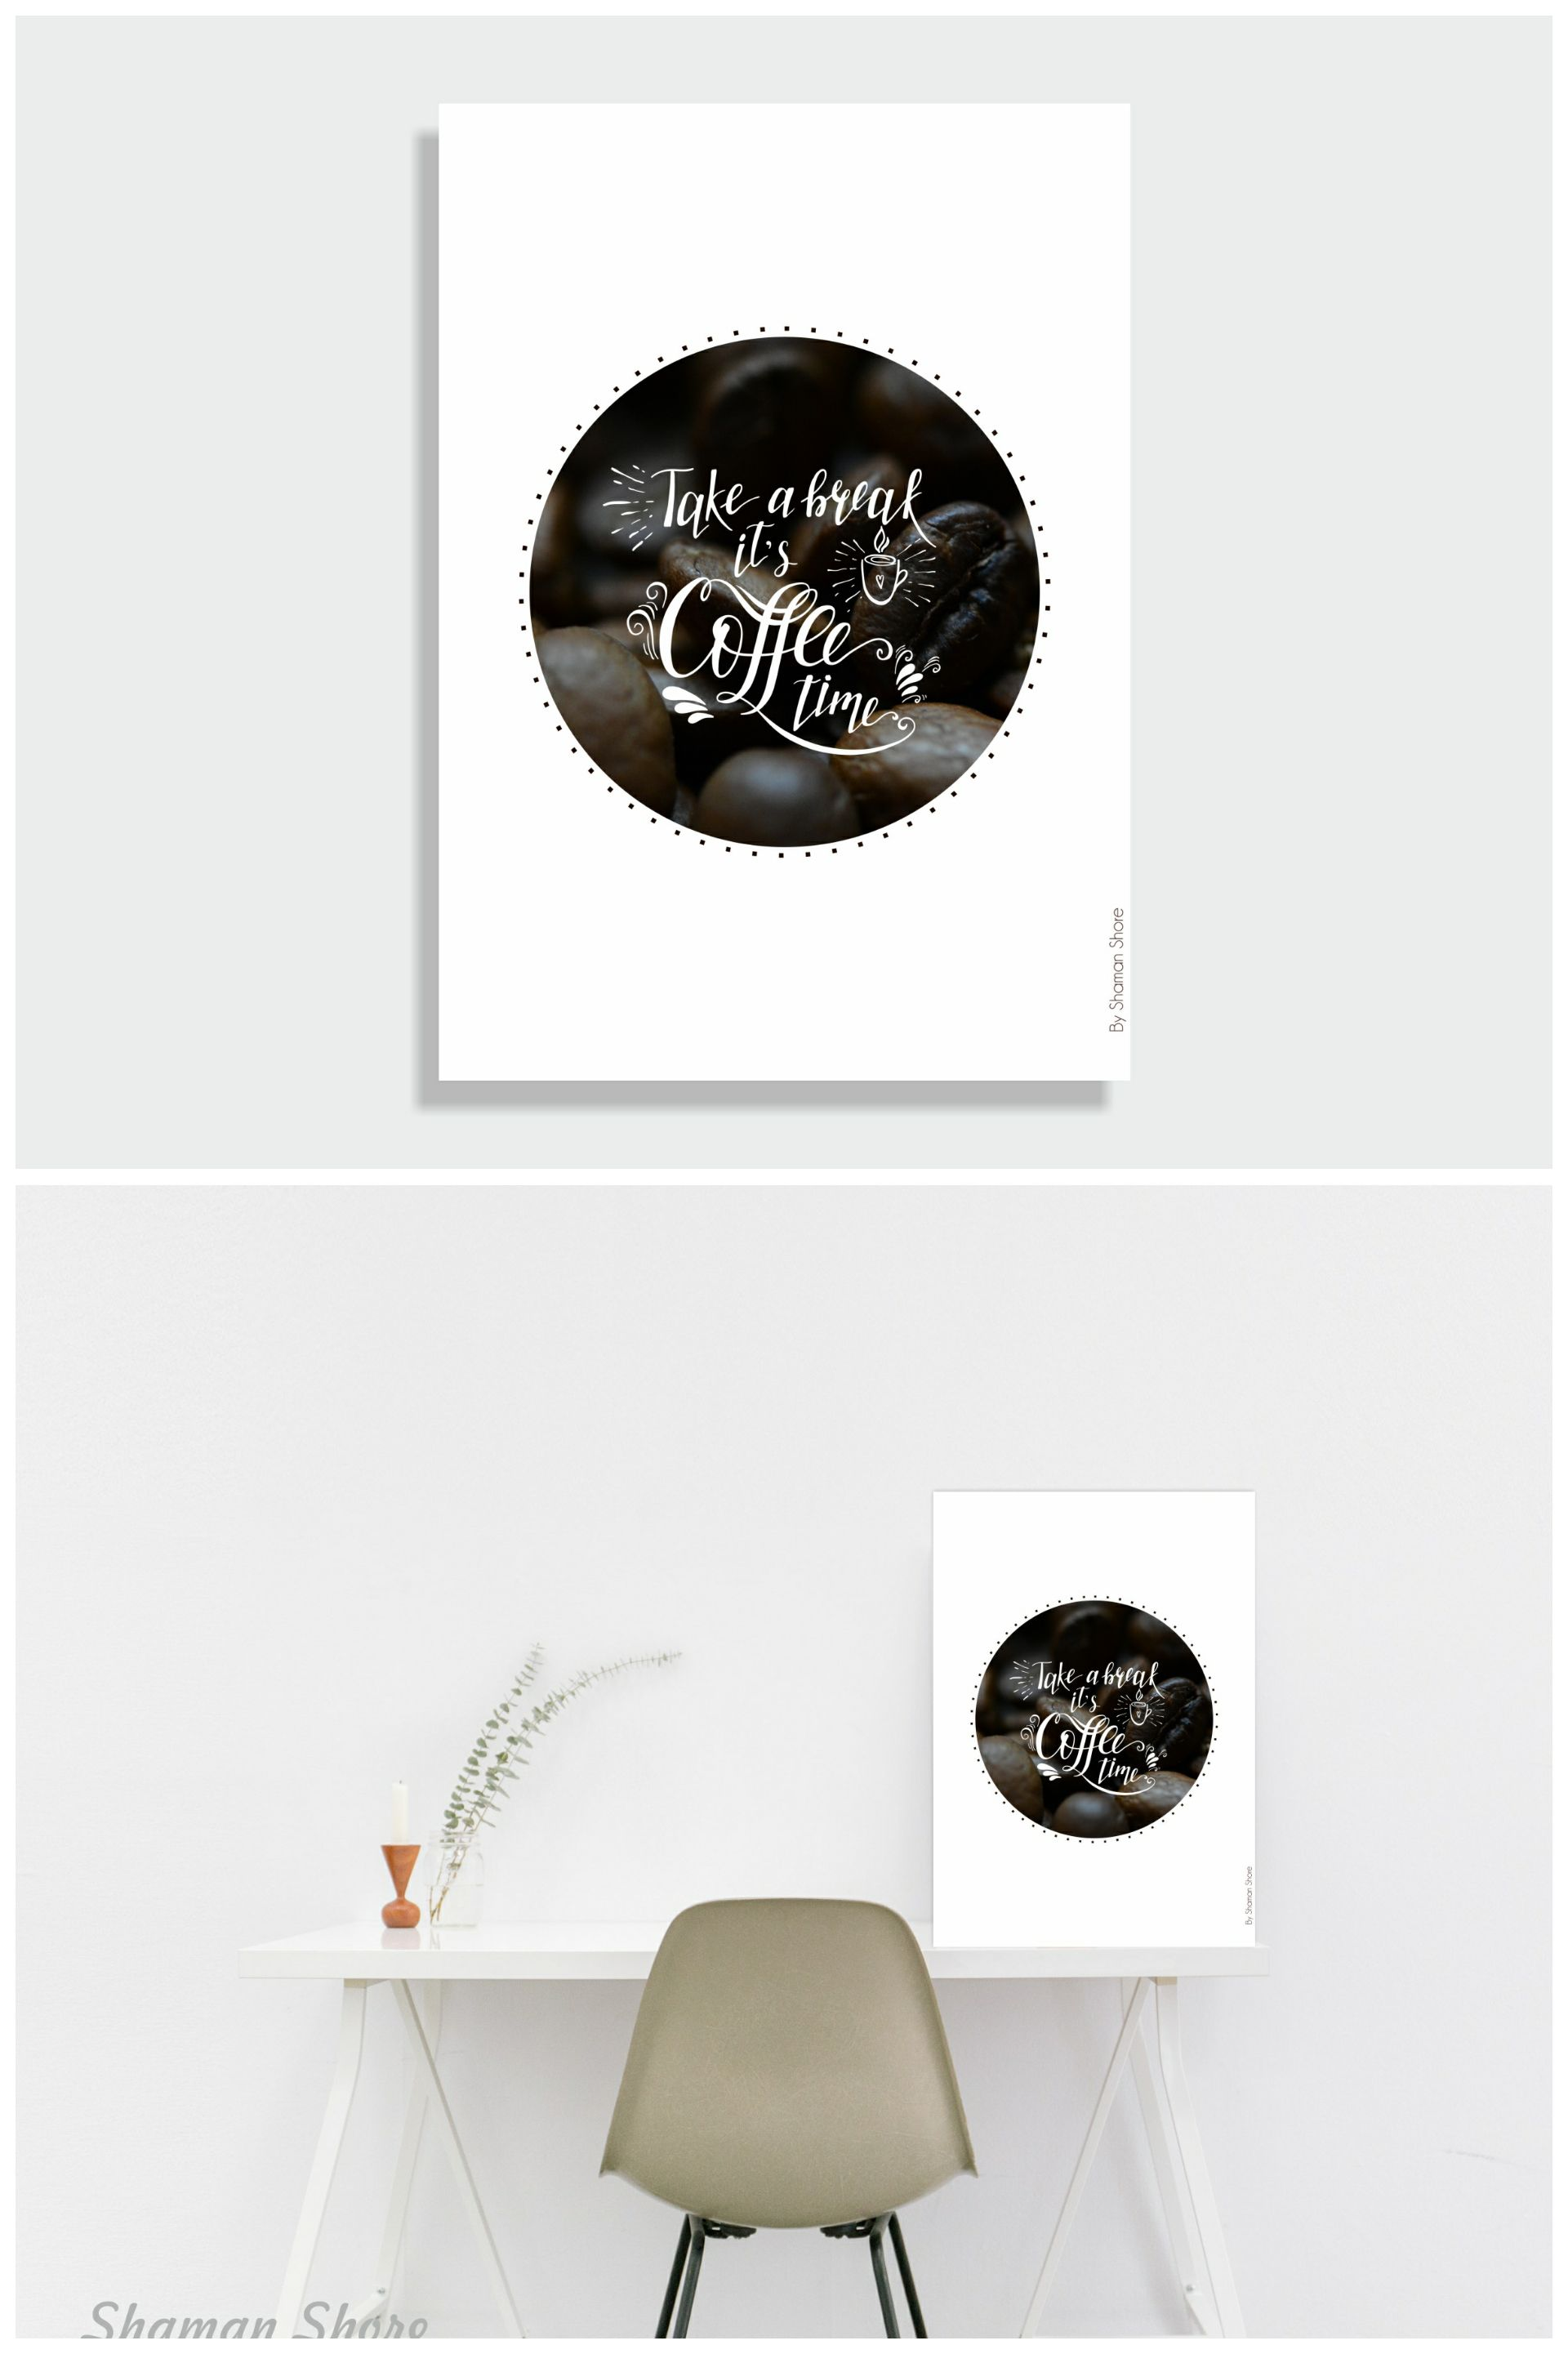 Coffee wall décor for the office take a break itus coffee time art